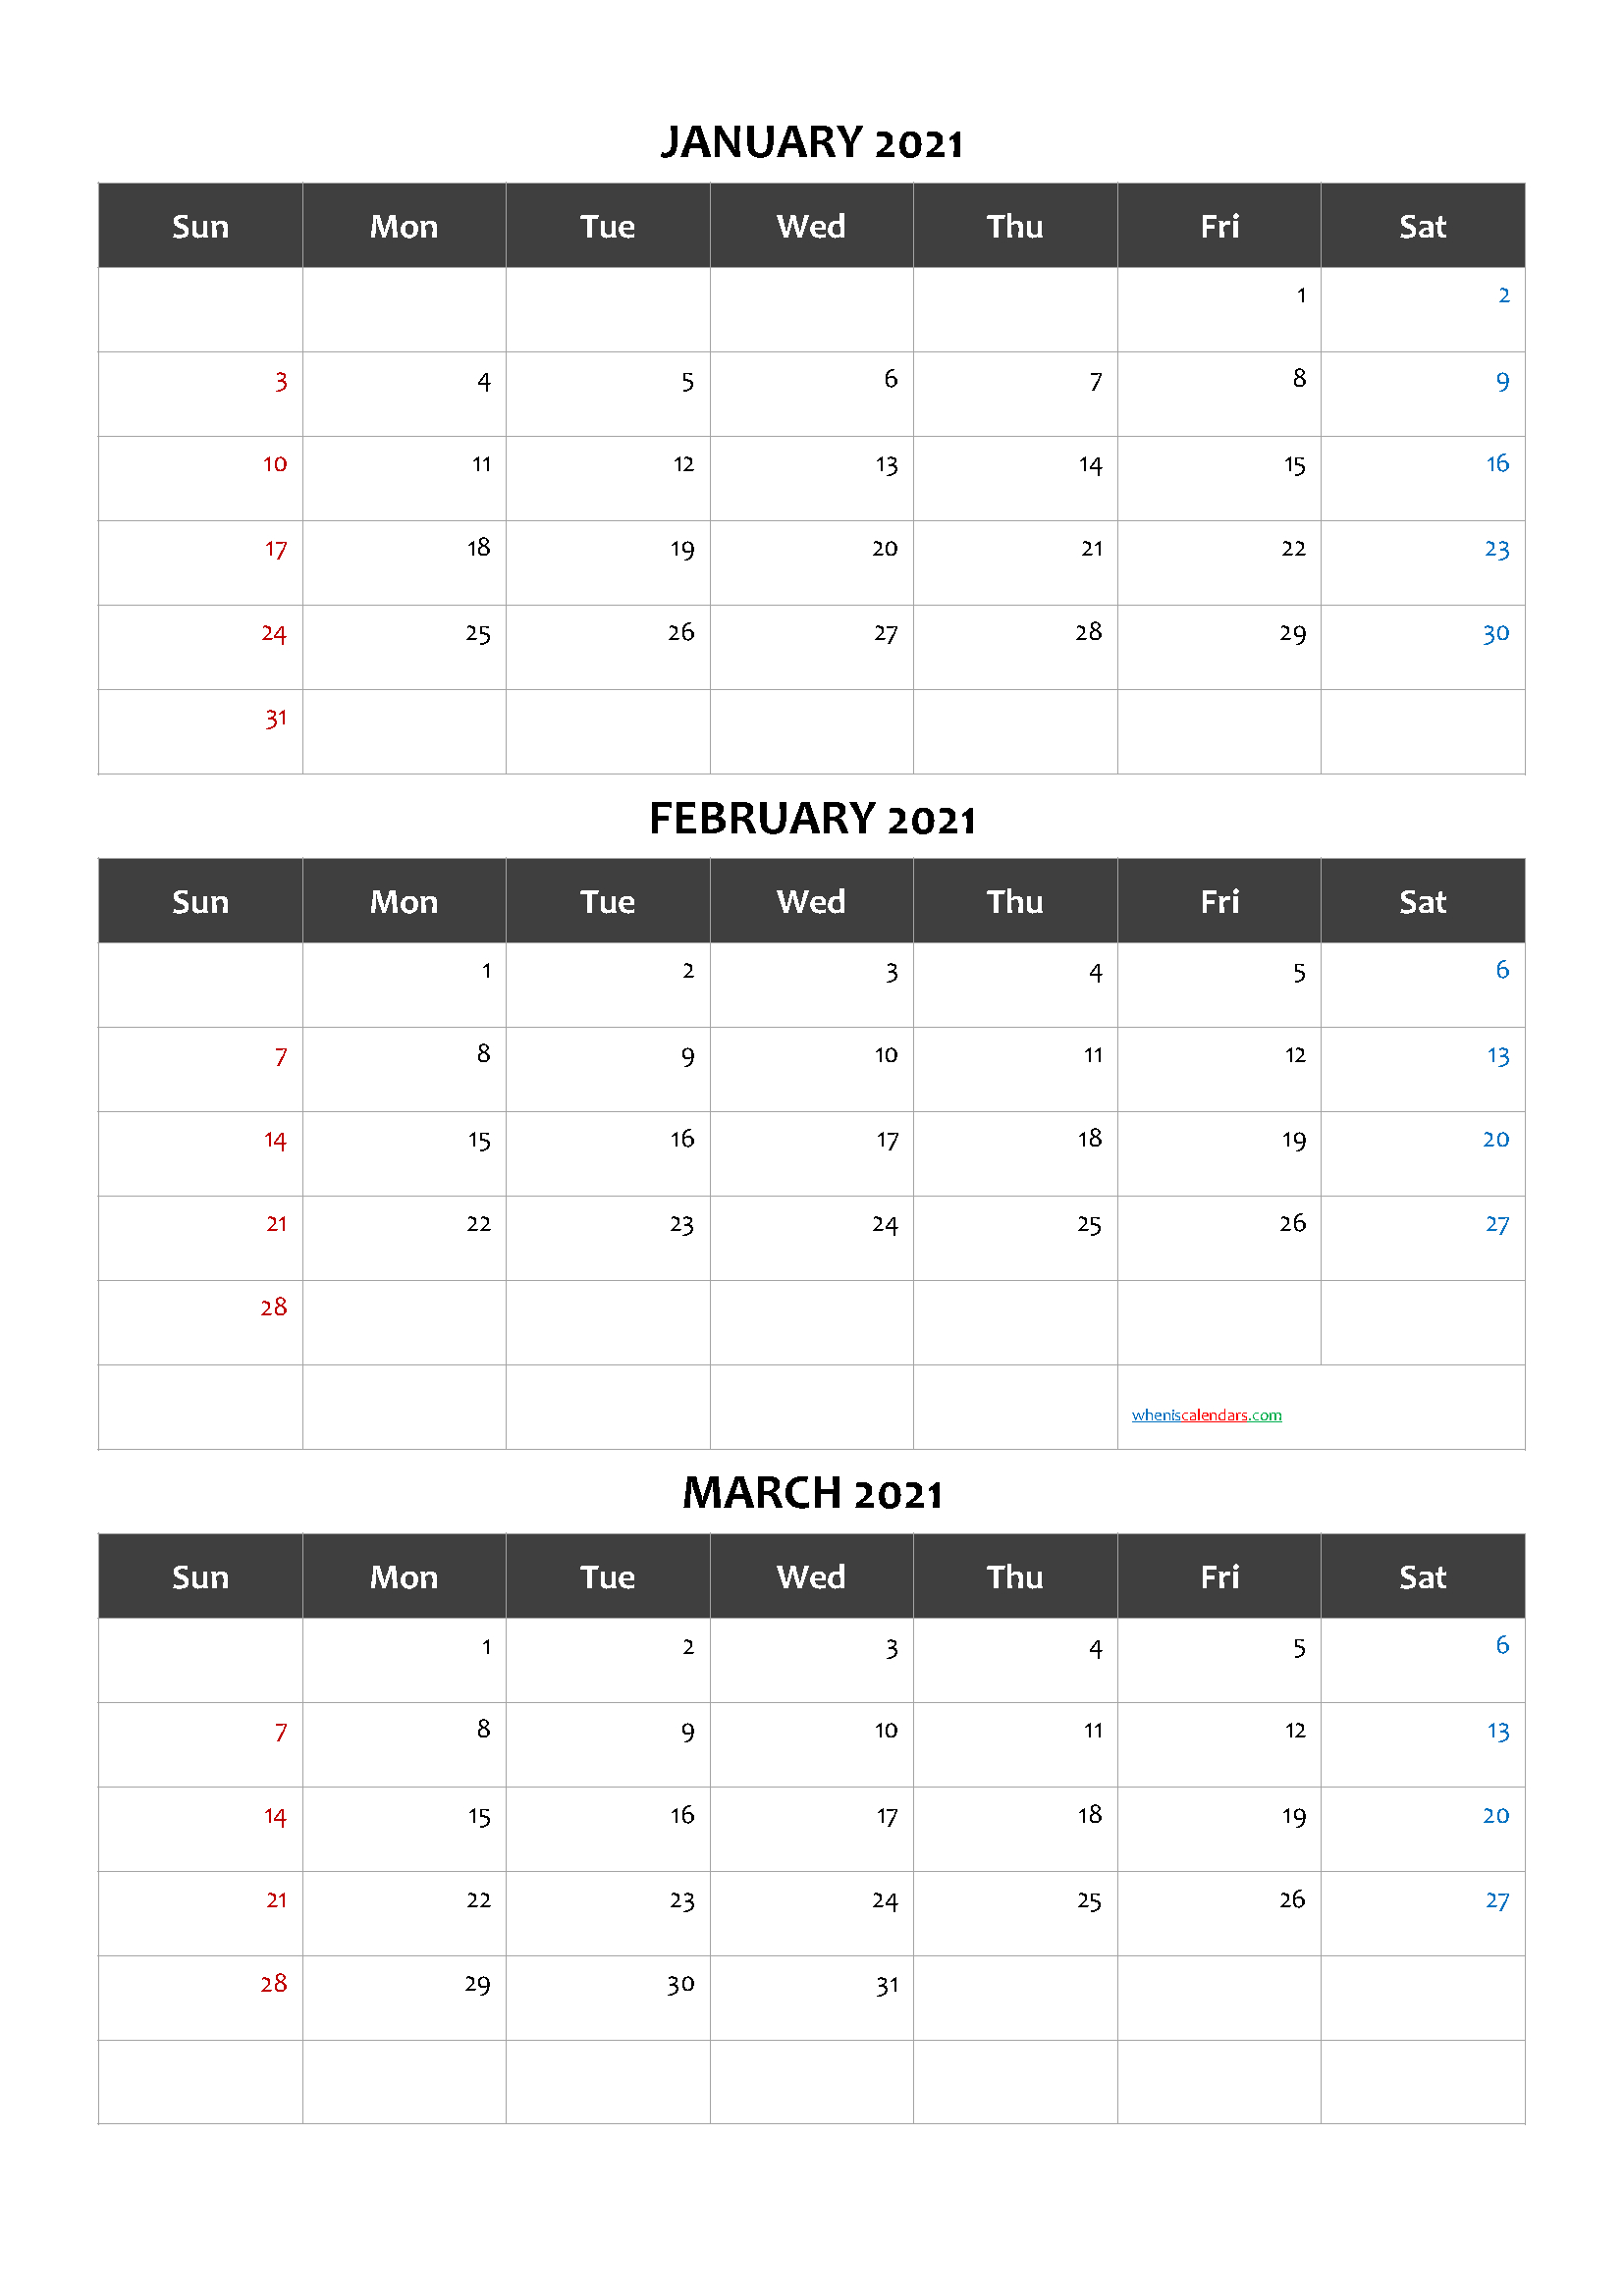 Calendar January February March 2021 Template Code Cand1